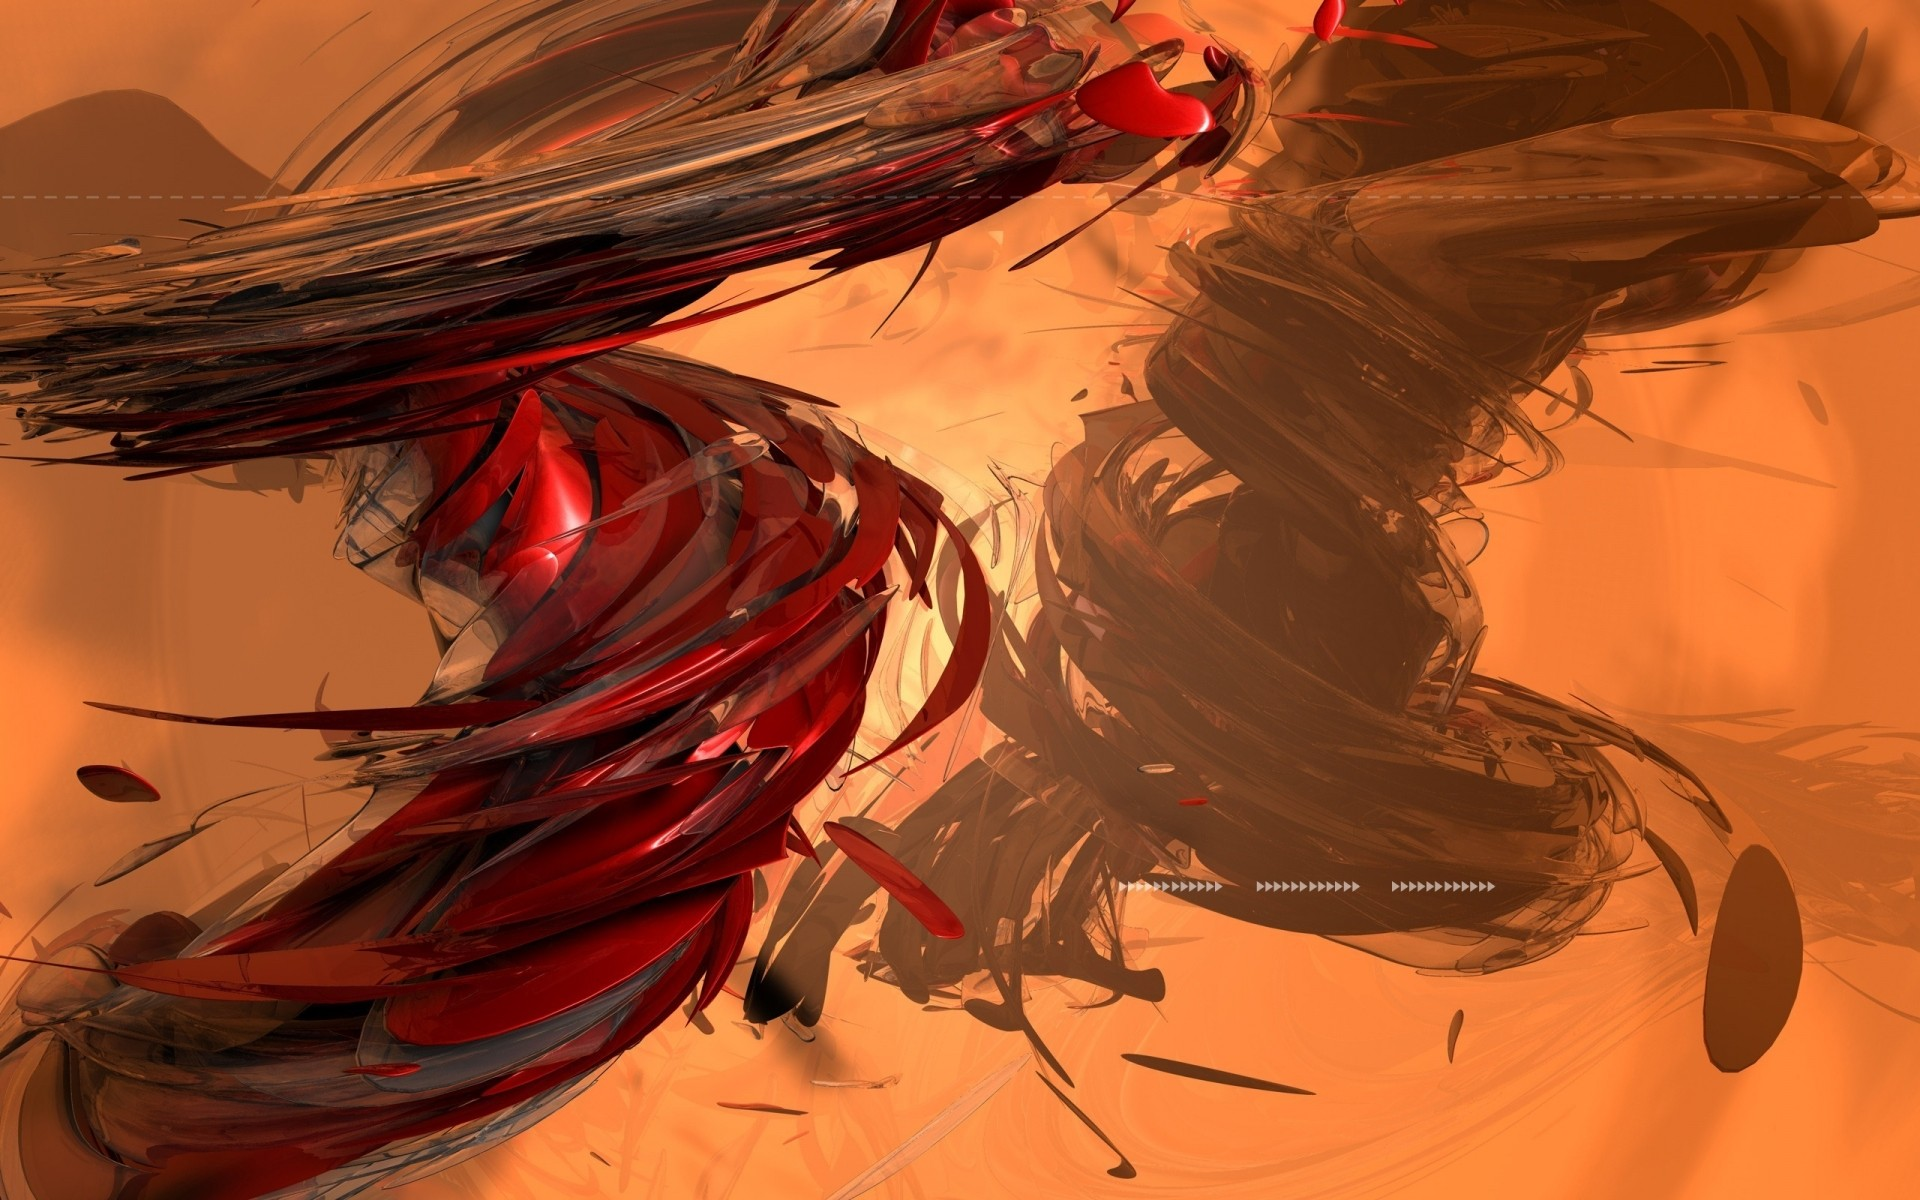 abstract art illustration blur motion graphic design artistic flame